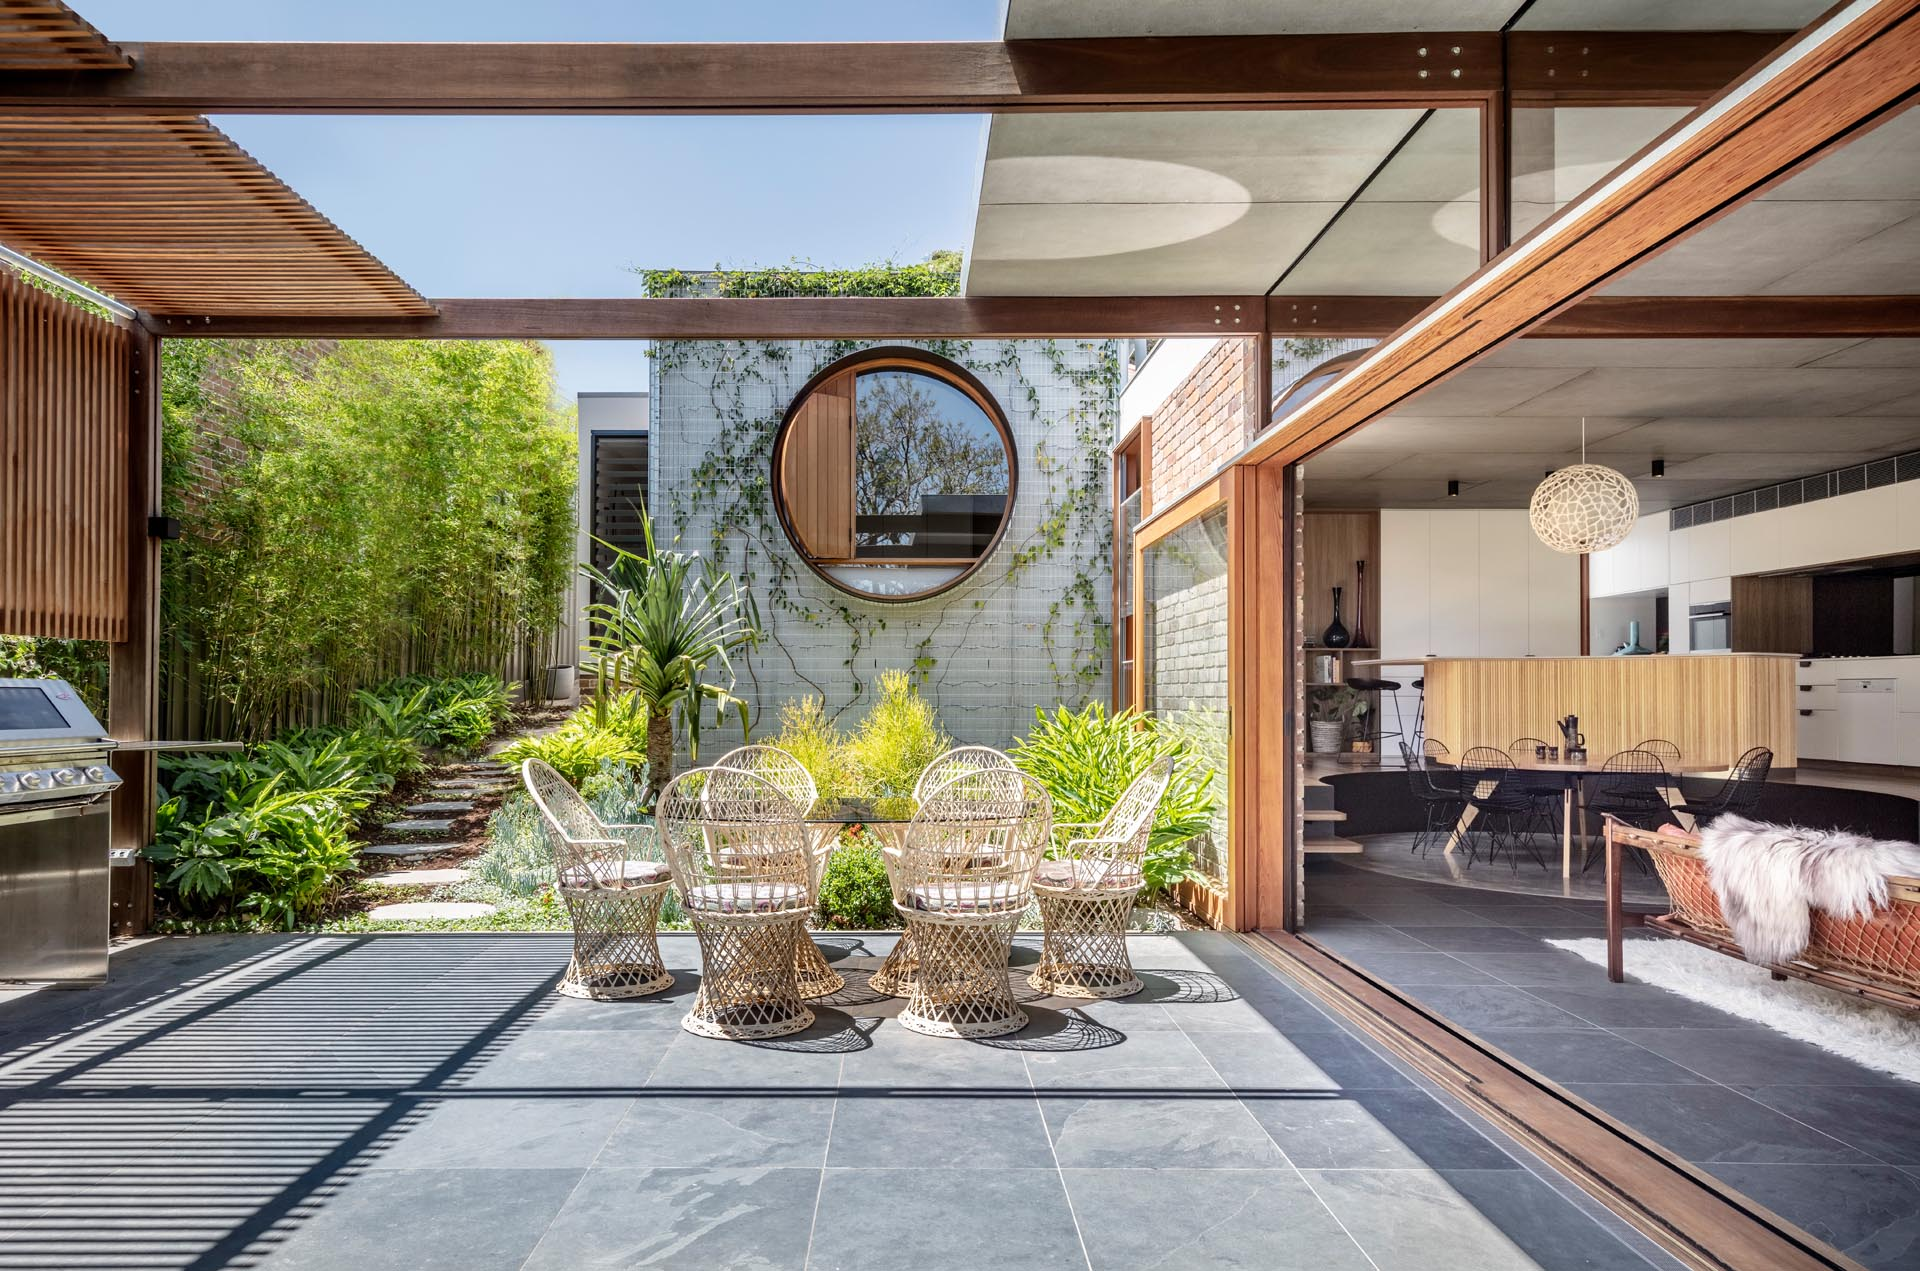 Indoor / outdoor living was key in the design of this modern addition, with a partially covered patio with a bbq area and outdoor dining.